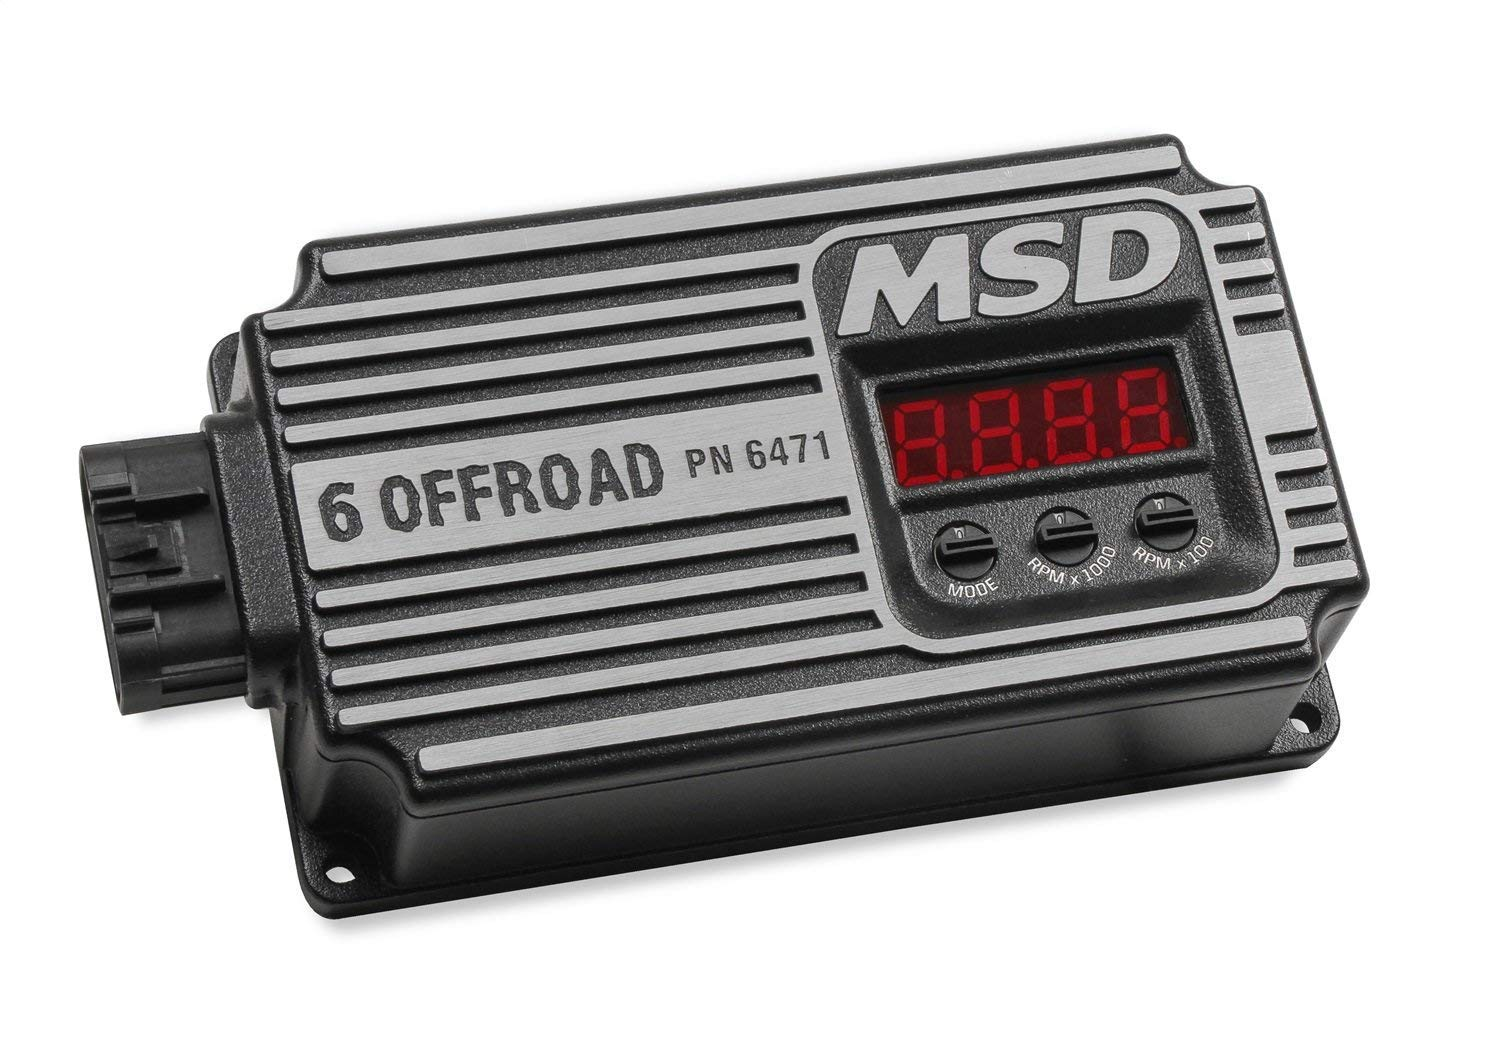 MSD Ignition 6471 Ignition Control; Digital 6 Offroad; 12000 RPM Range; Built In Start Retard 0-20 Degree Adjustable; Black;